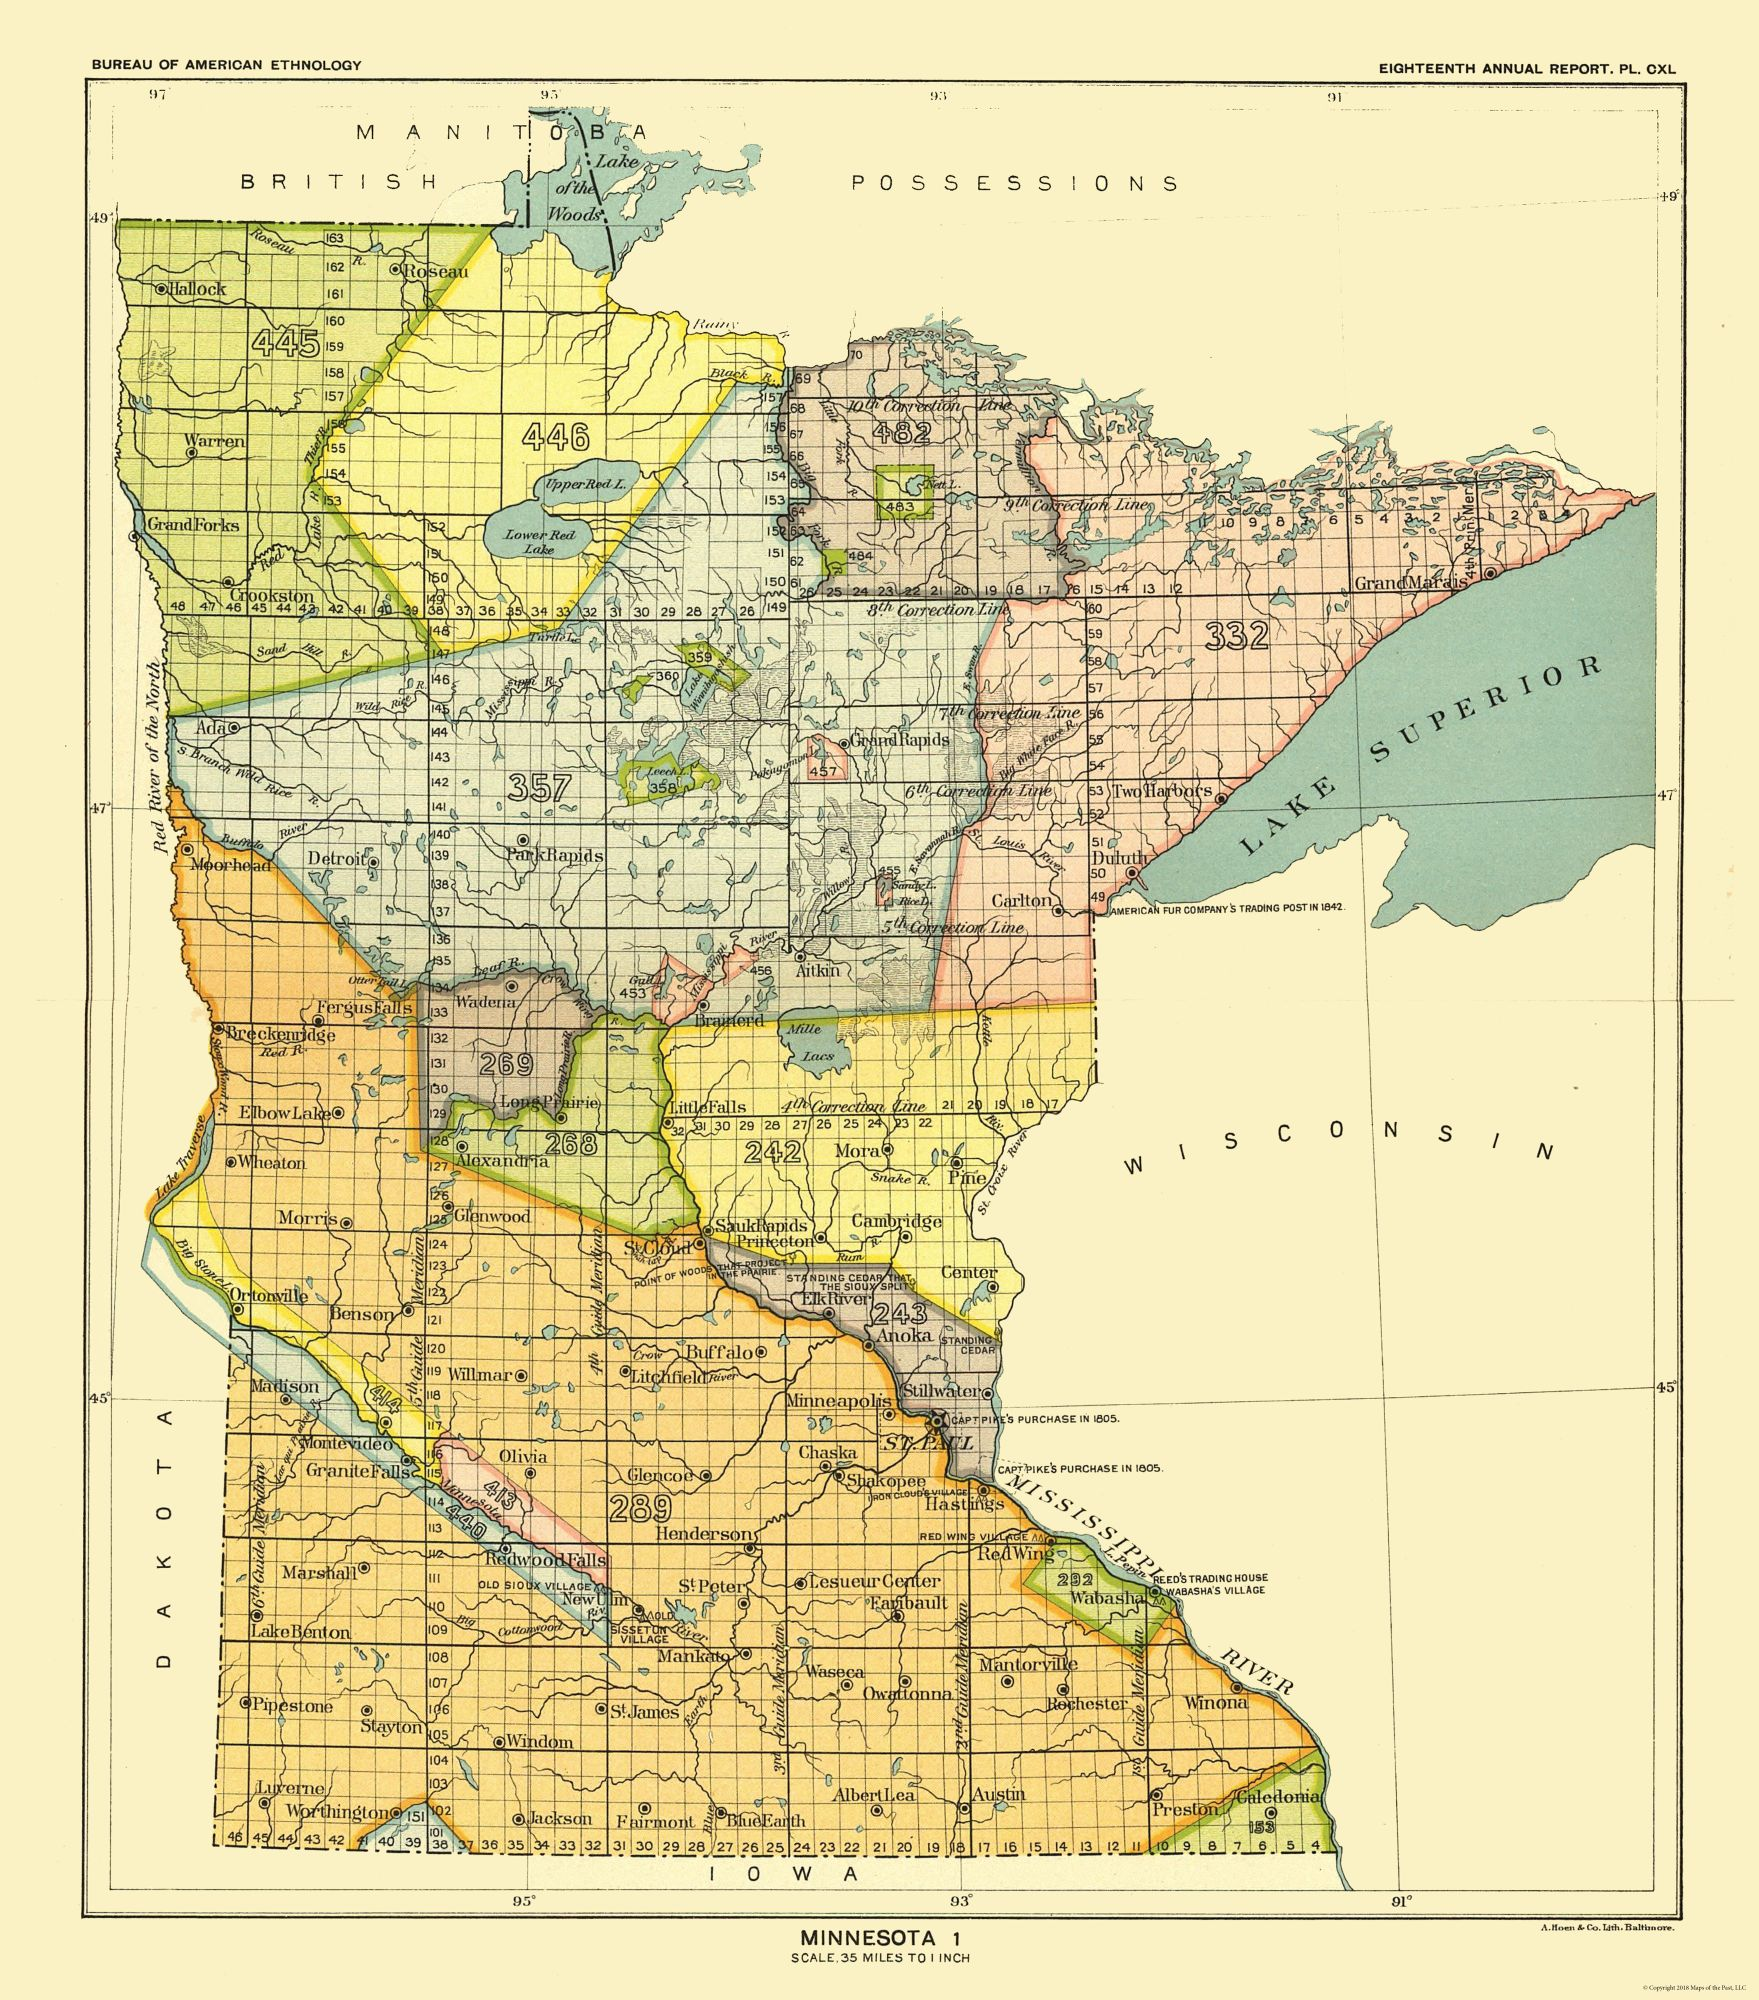 Old State Map - Minnesota - Hoen 1896 - 23 x 26.15